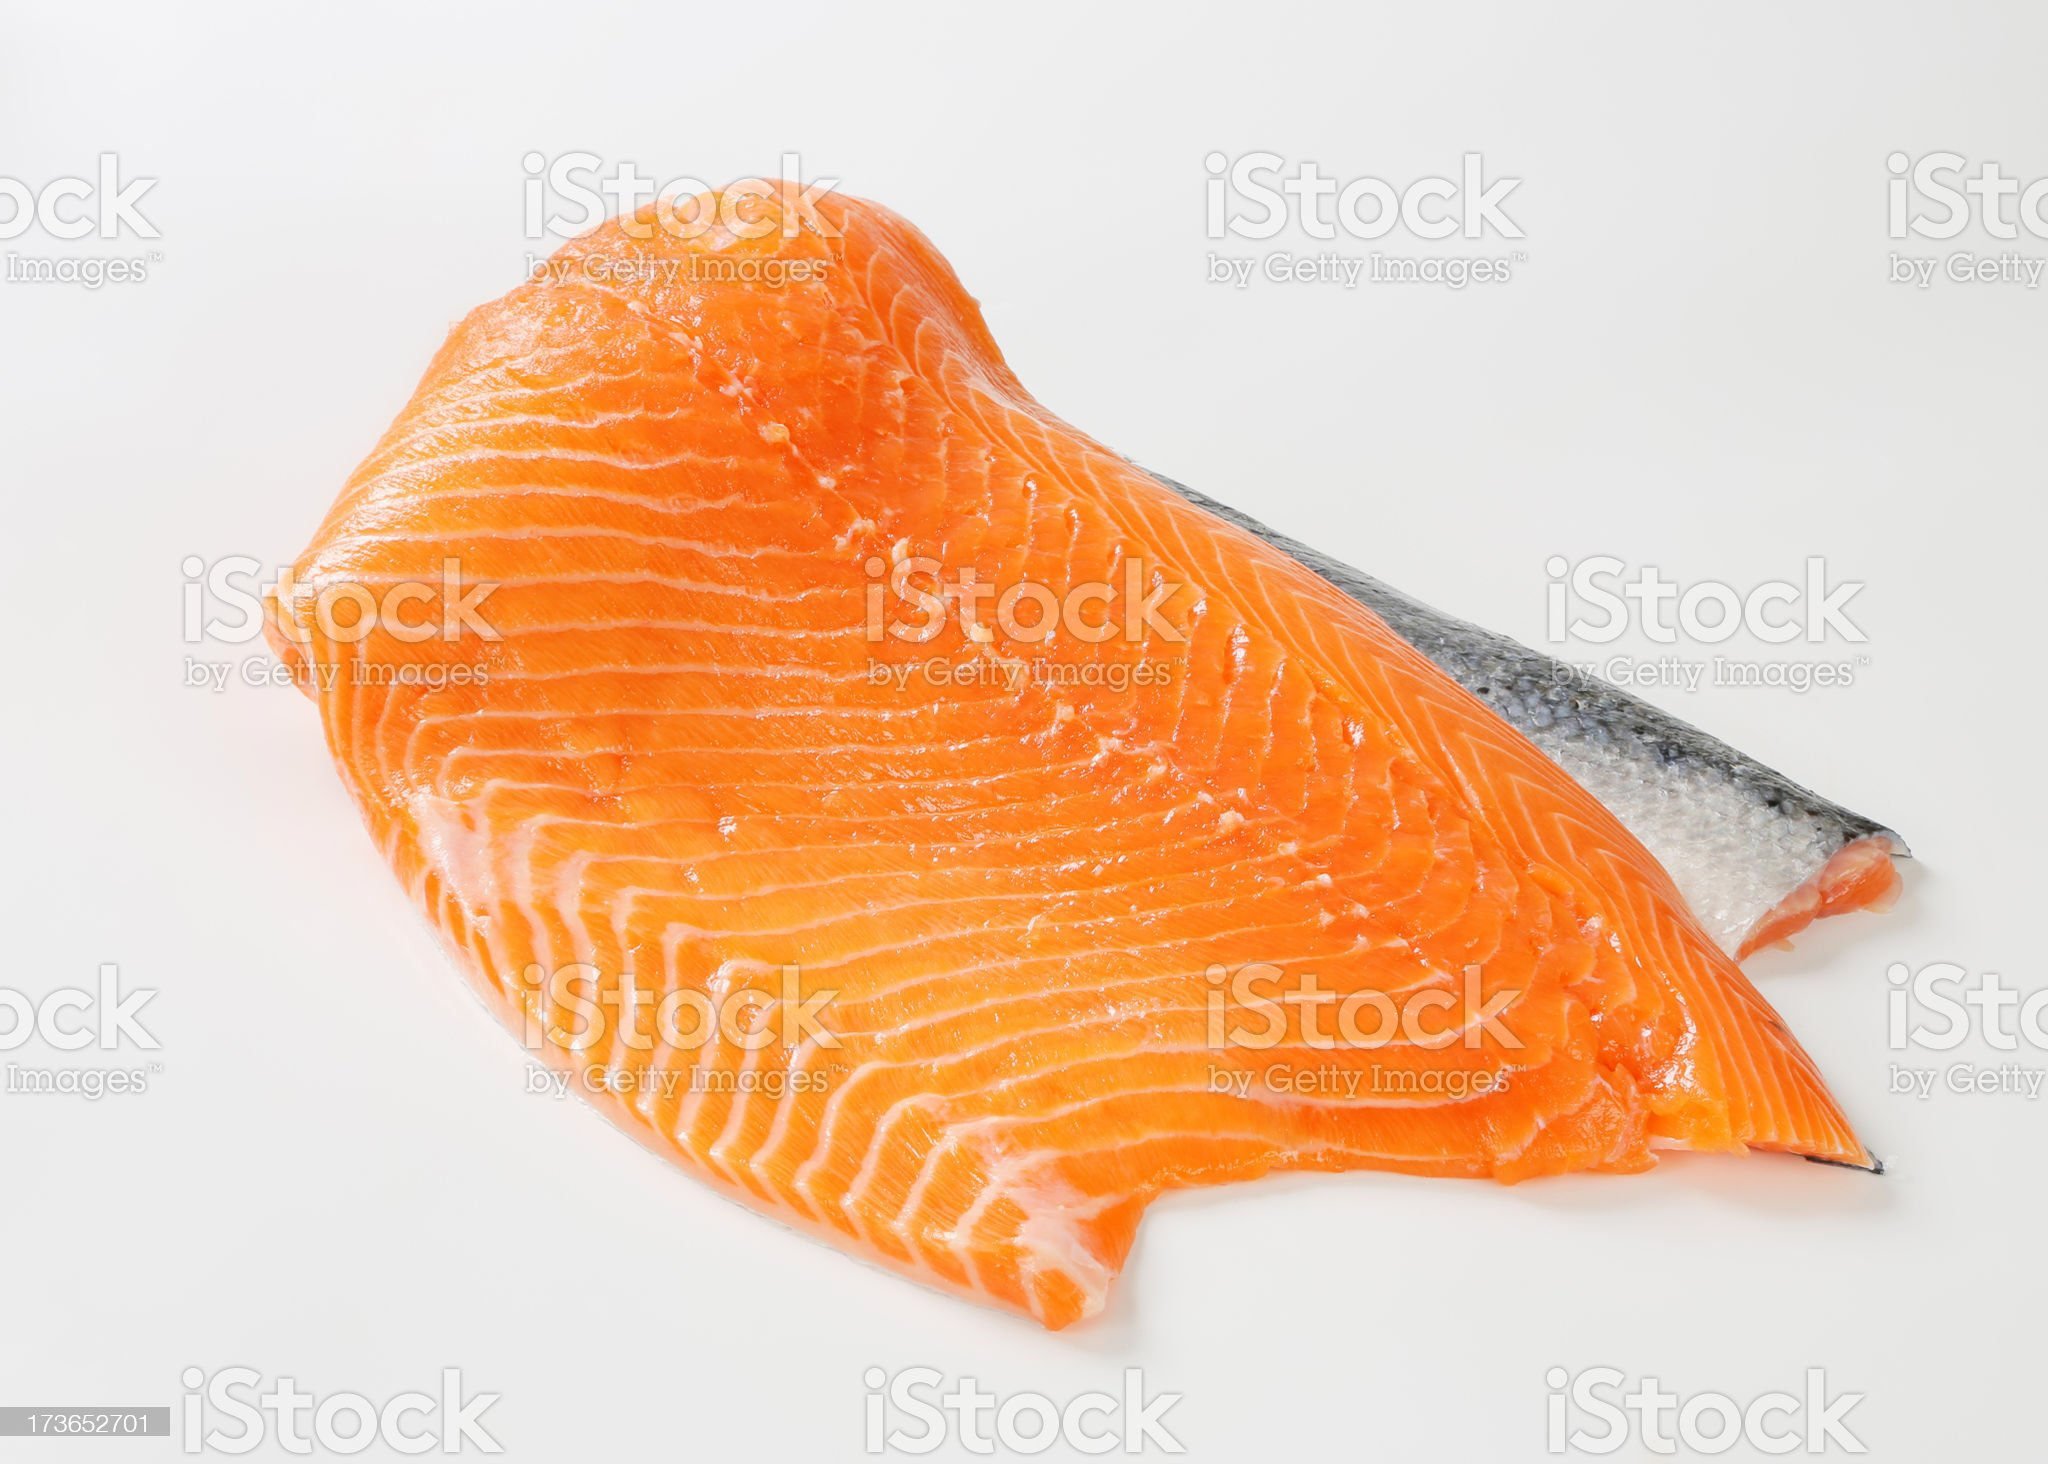 Raw salmon fillet royalty-free stock photo